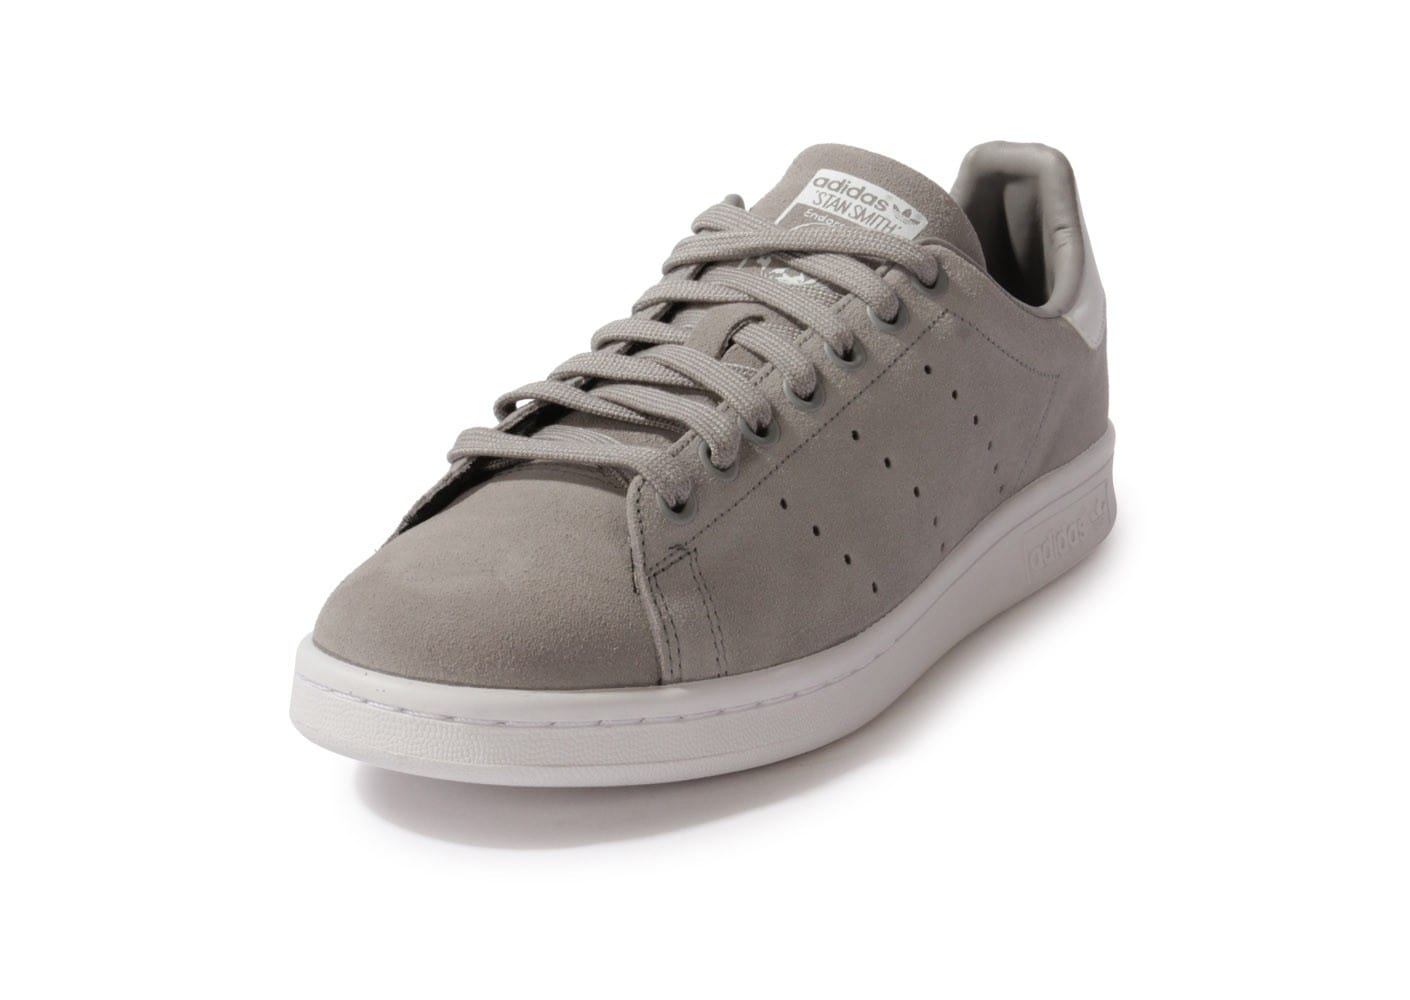 Adidas Stan Smith baskets grise